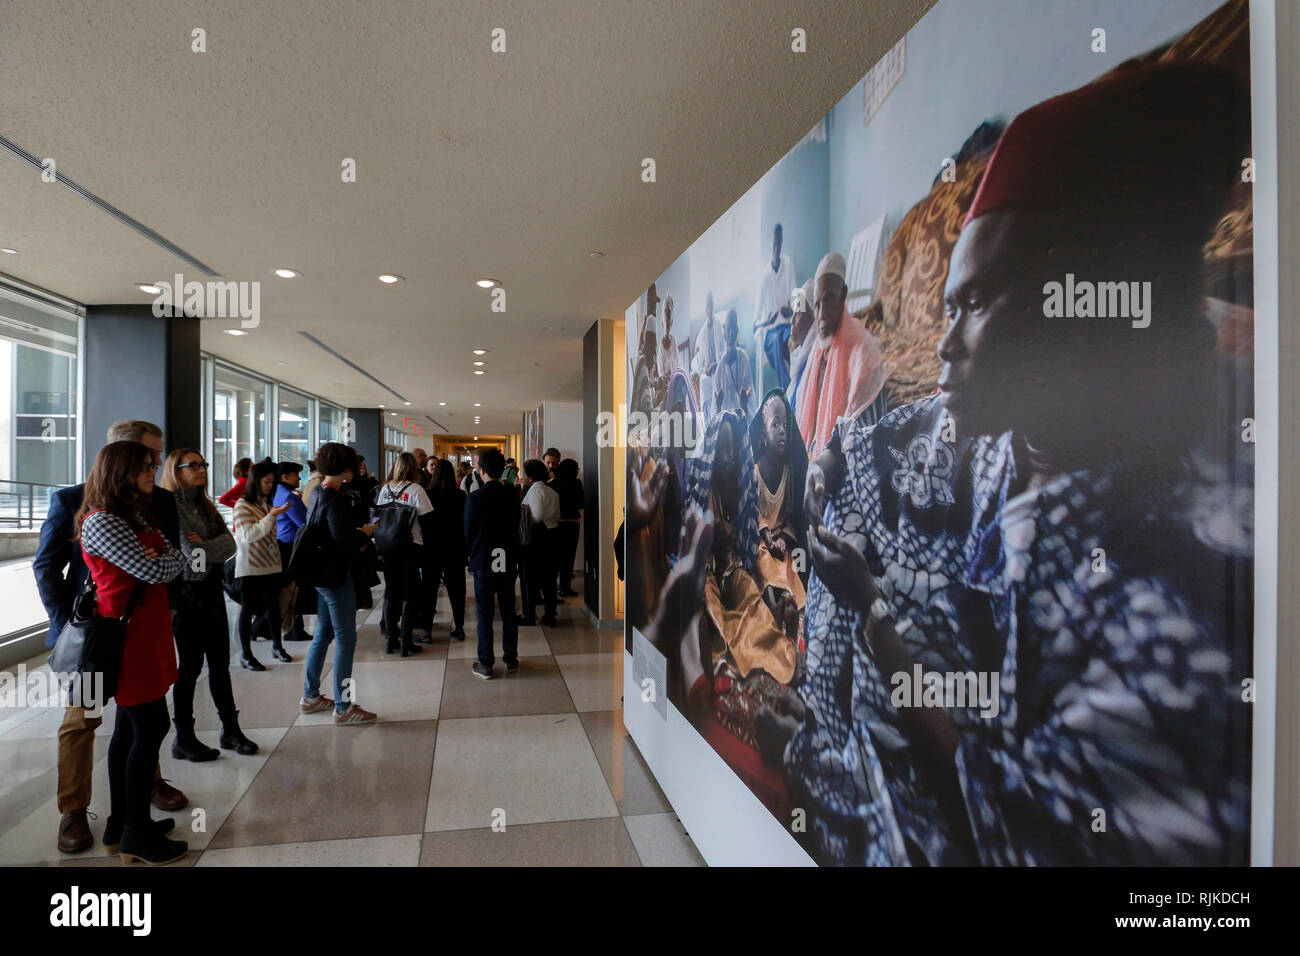 United Nations, United Nations headquarters in New York. 6th Feb, 2019. People look at photos at the photo exhibition of 'The 68 Million Girls at Risk' on the occasion of the International Day of Zero Tolerance for Female Genital Mutilation, at the United Nations headquarters in New York, Feb. 6, 2019. Three executive directors of the UN agencies on Wednesday called for actions to eliminate female genital mutilation by 2030 on the International Day of Zero Tolerance for Female Genital Mutilation. Credit: Li Muzi/Xinhua/Alamy Live News - Stock Image